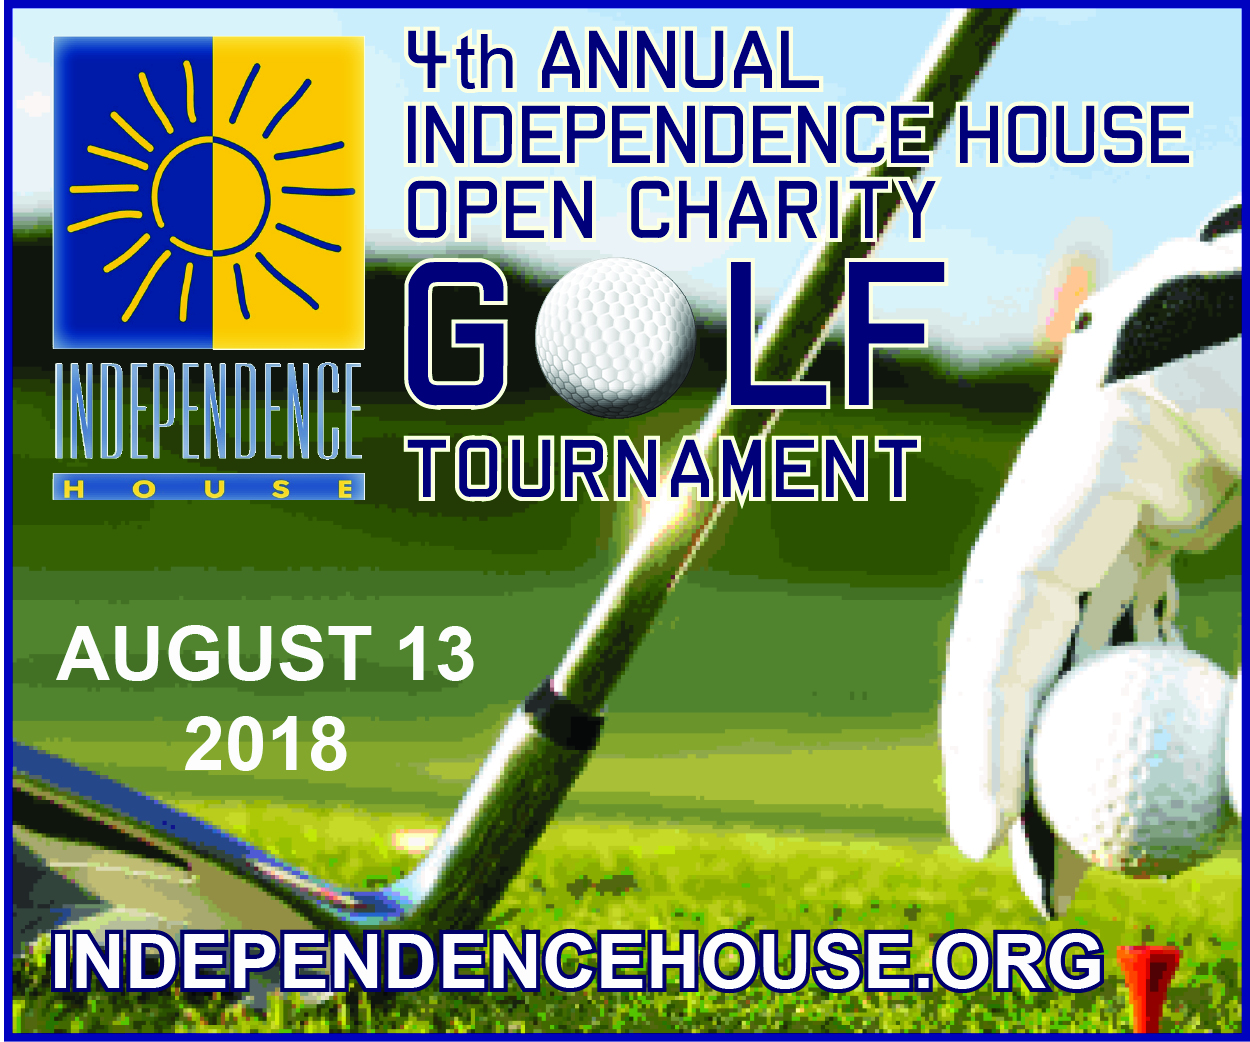 4th annual independence house open charity golf tournament